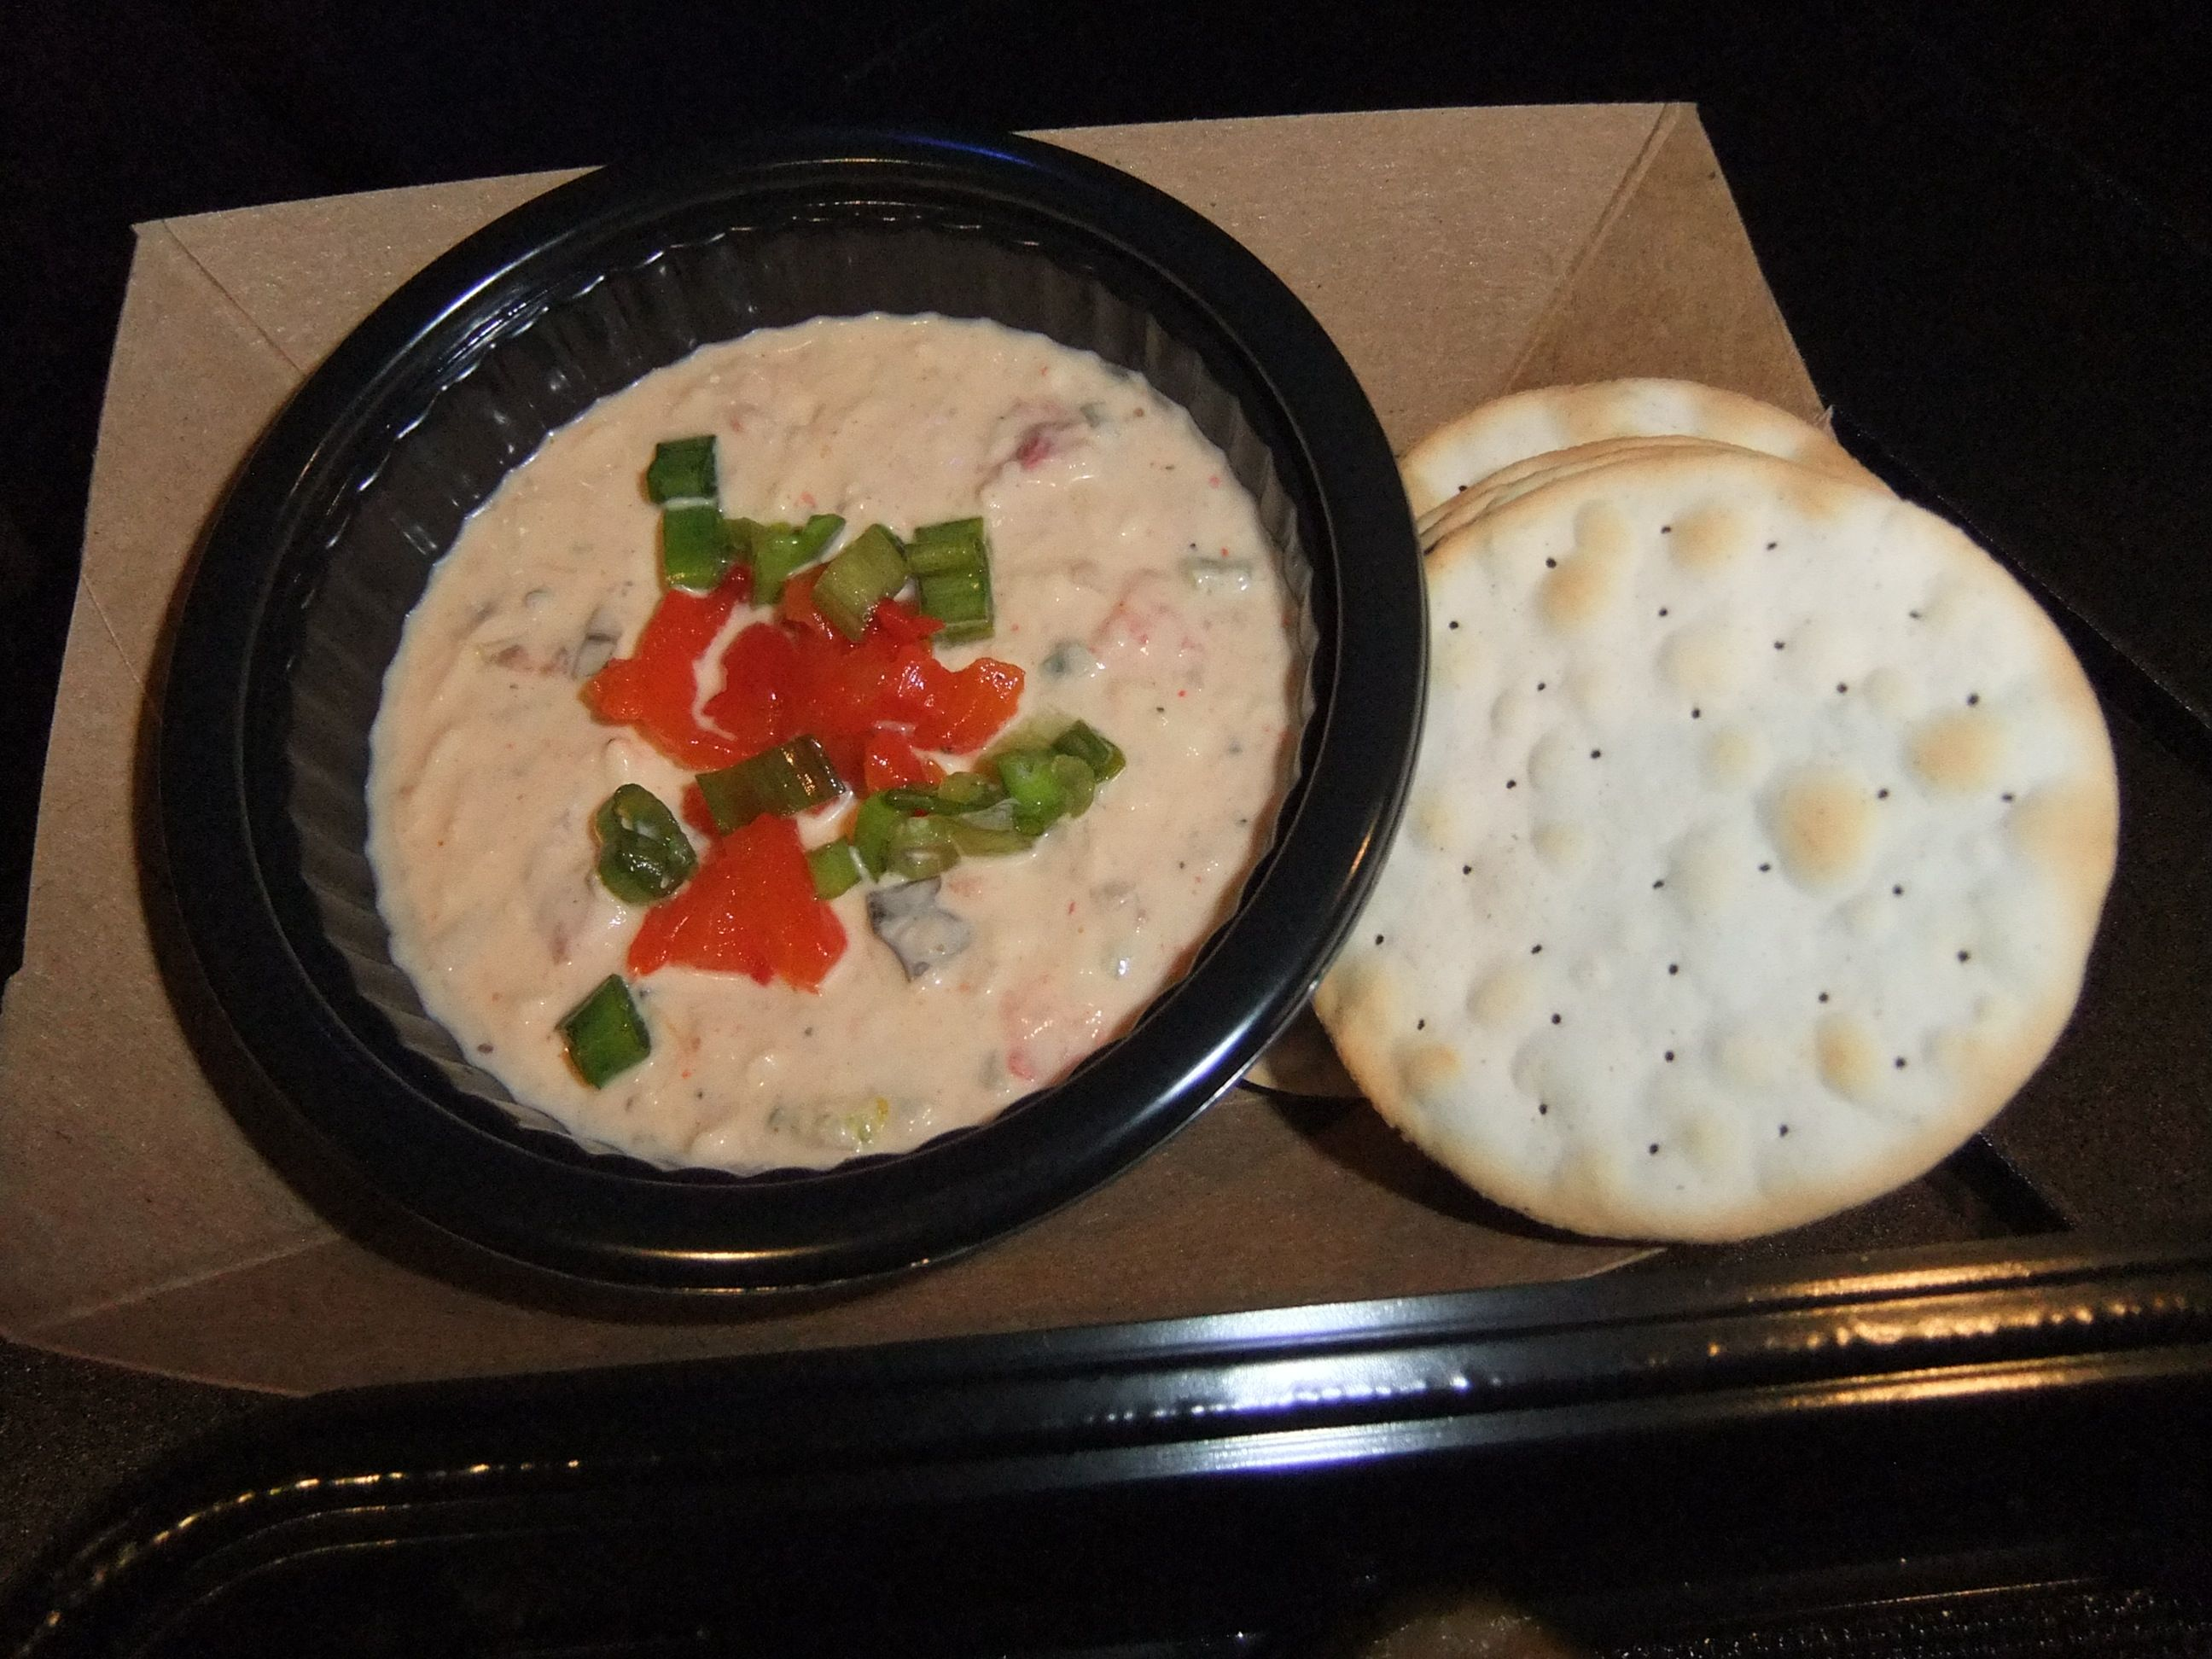 Spicy Pimento Cheese Dip served at Craft Beer in the Odyssey building during Epcot Food & Wine 2014.